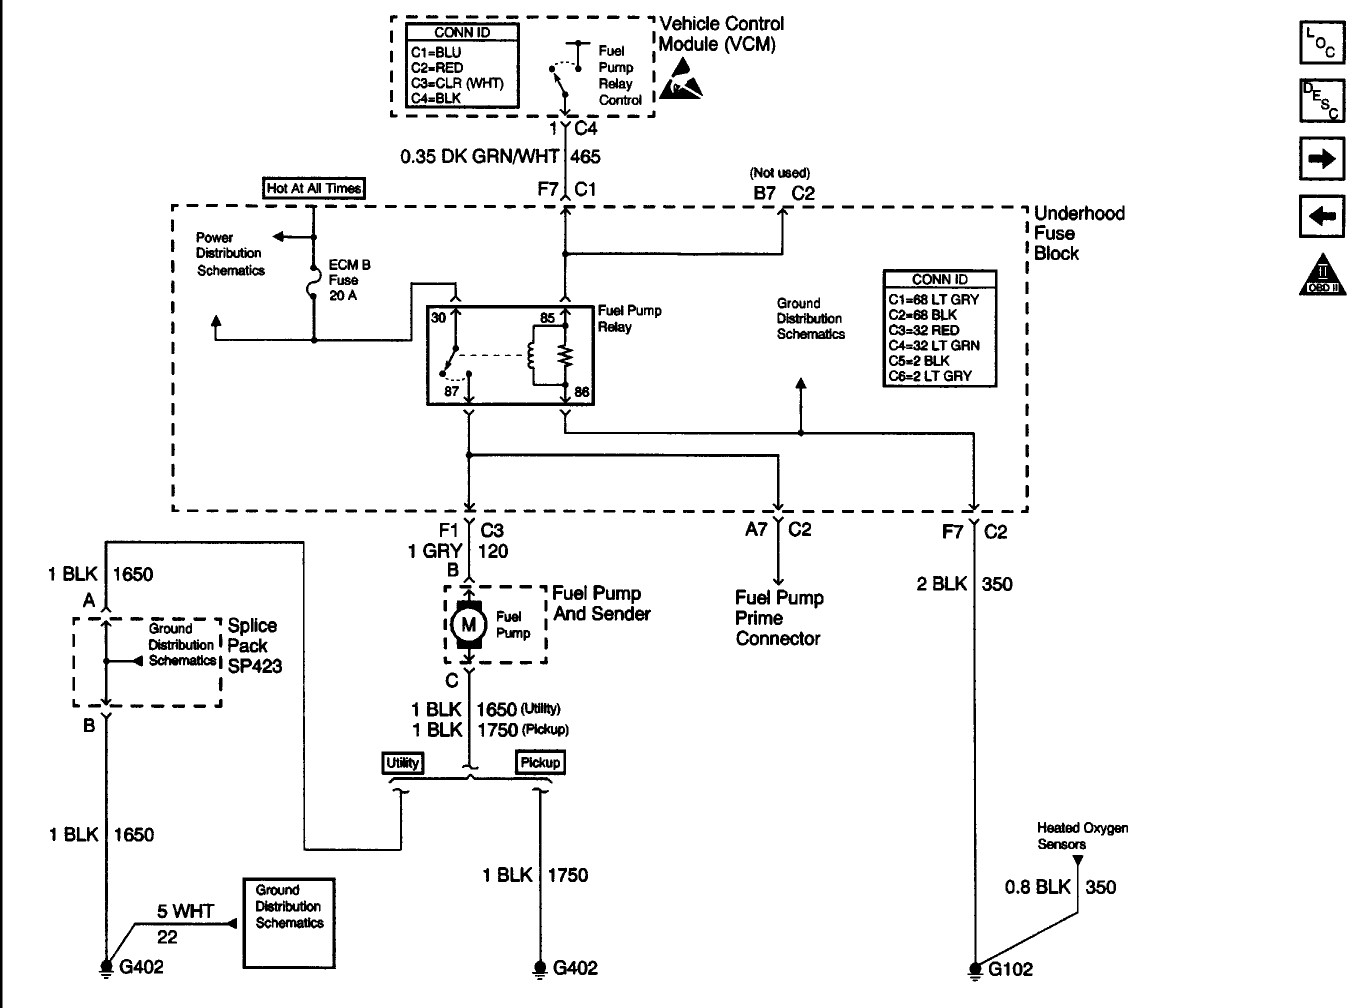 hight resolution of fuel pump relay wiring diagram on 91 240sx fuel pump wiring diagramwiring diagram for 240sx fuel